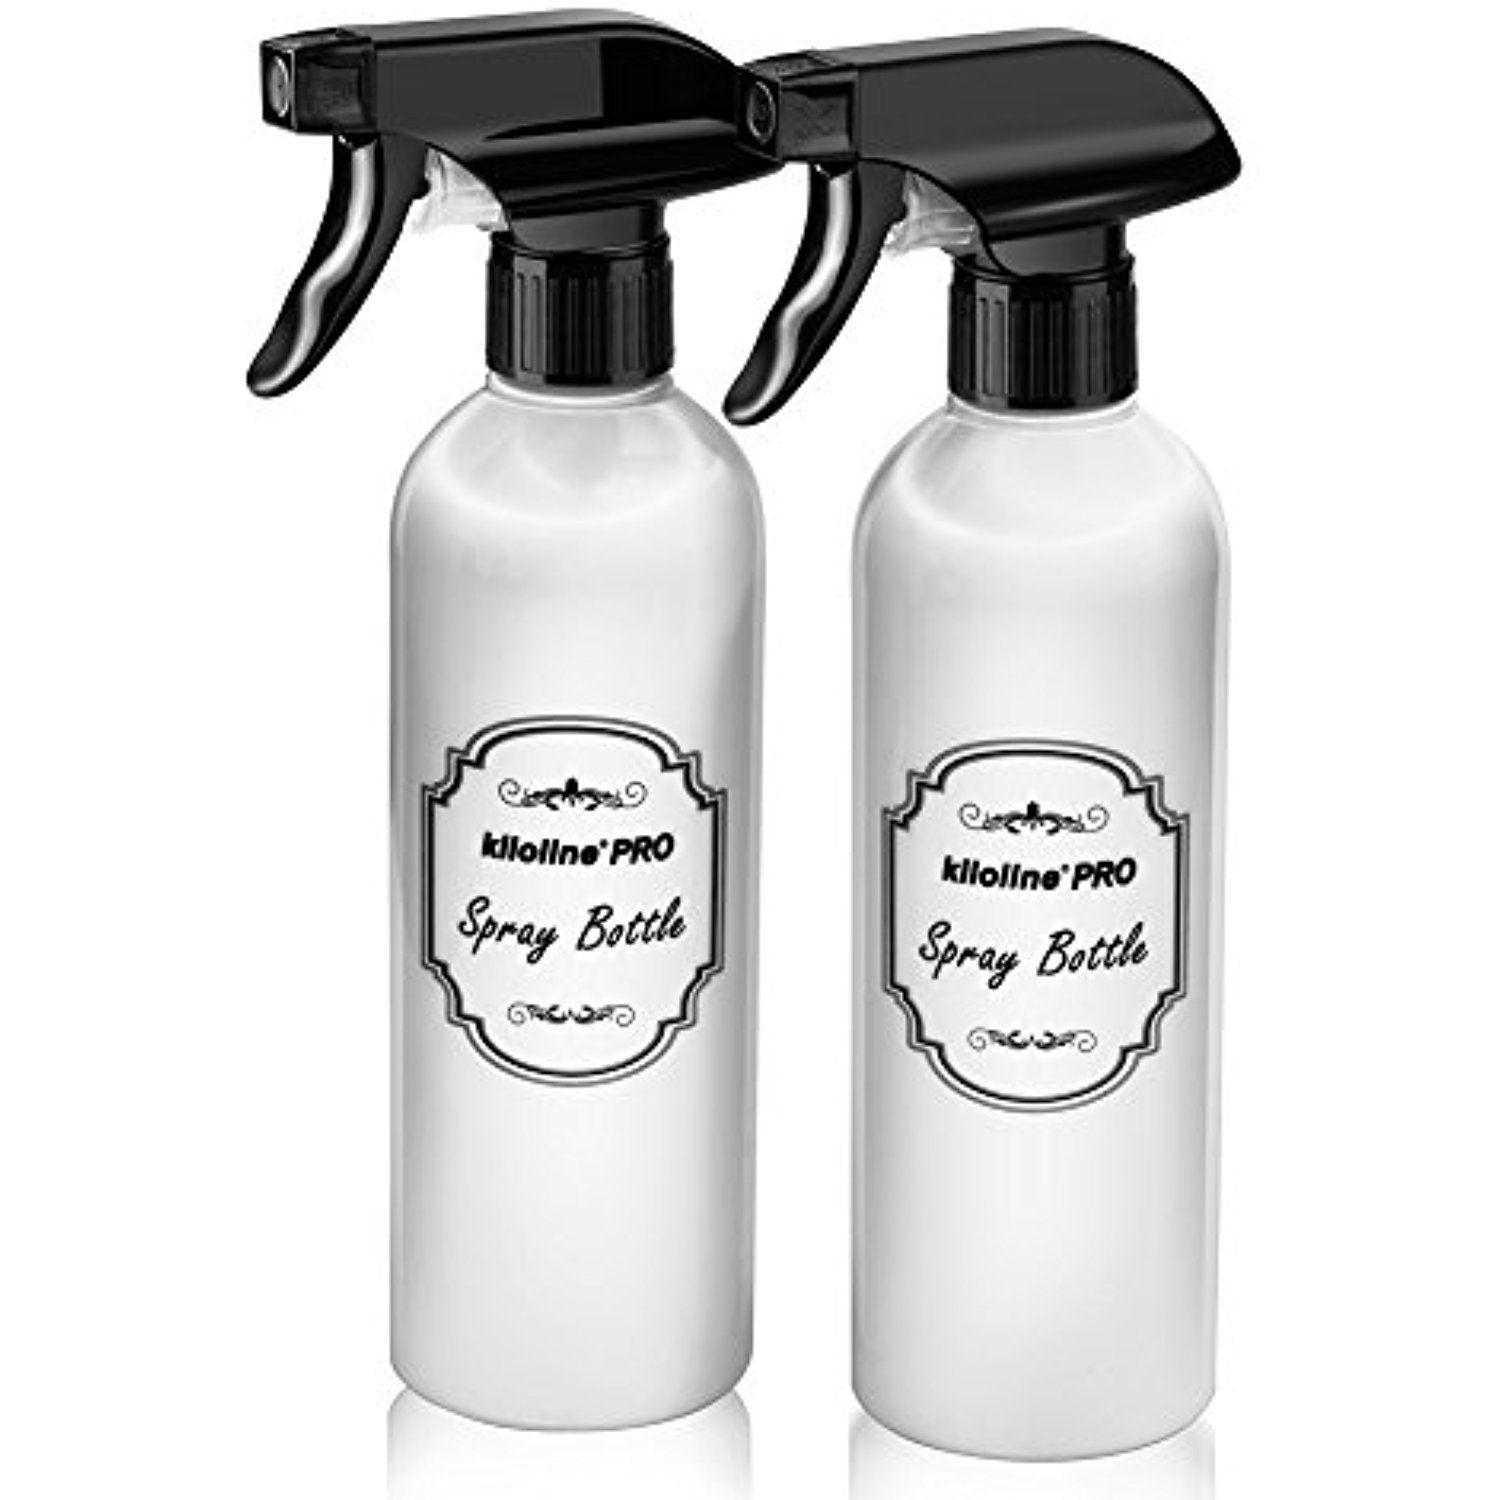 c2328d5f4a86 Kiloline Pro Spray Bottles (2-Pack) Refillable 17 oz. White Plastic ...